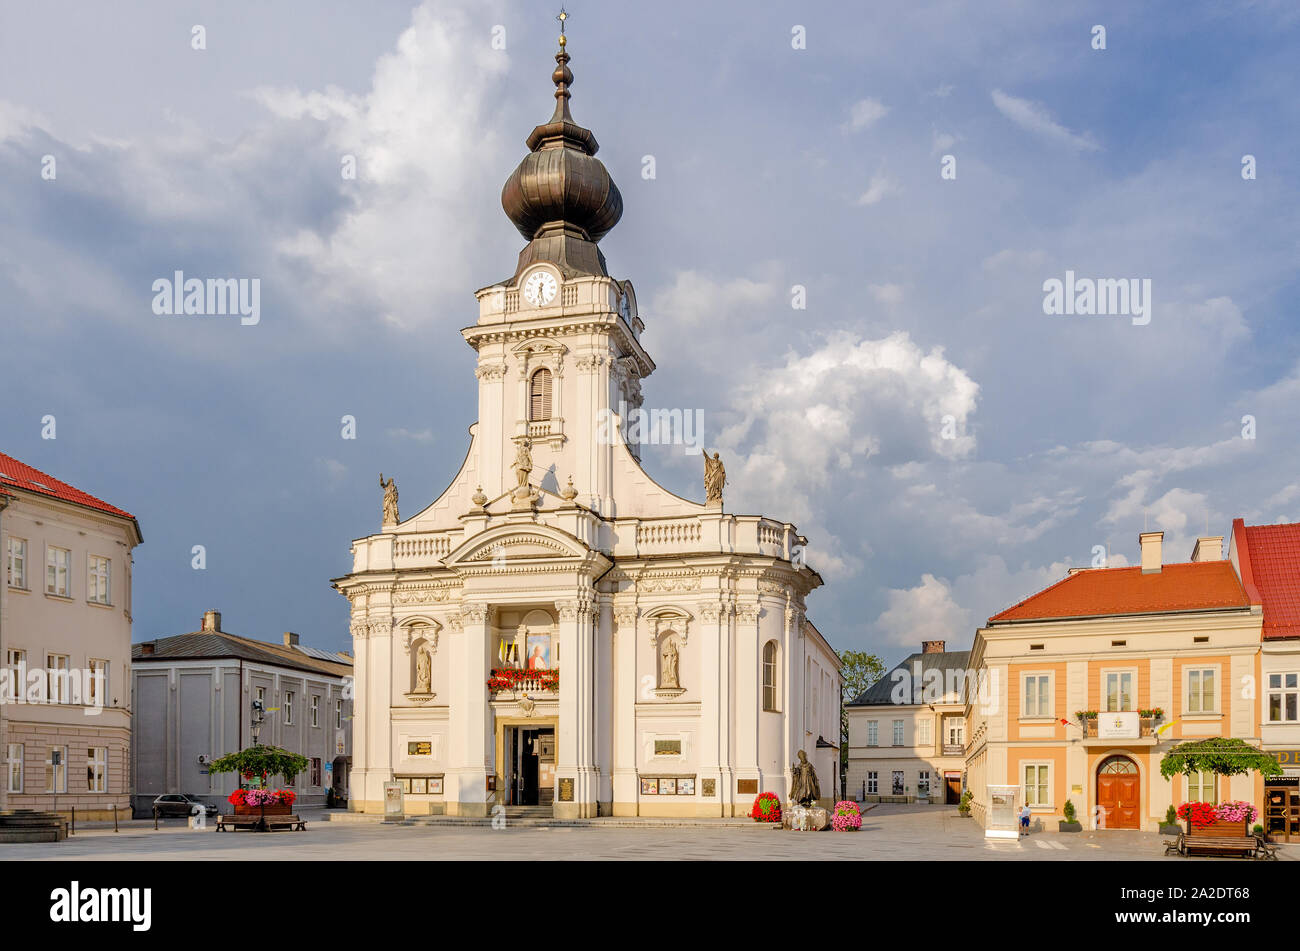 Wadowice, Lesser Poland province. Birthplace of Karol Wojtyla, pope John Paul II, Minor Basilica of the Presentation of the B Stock Photo